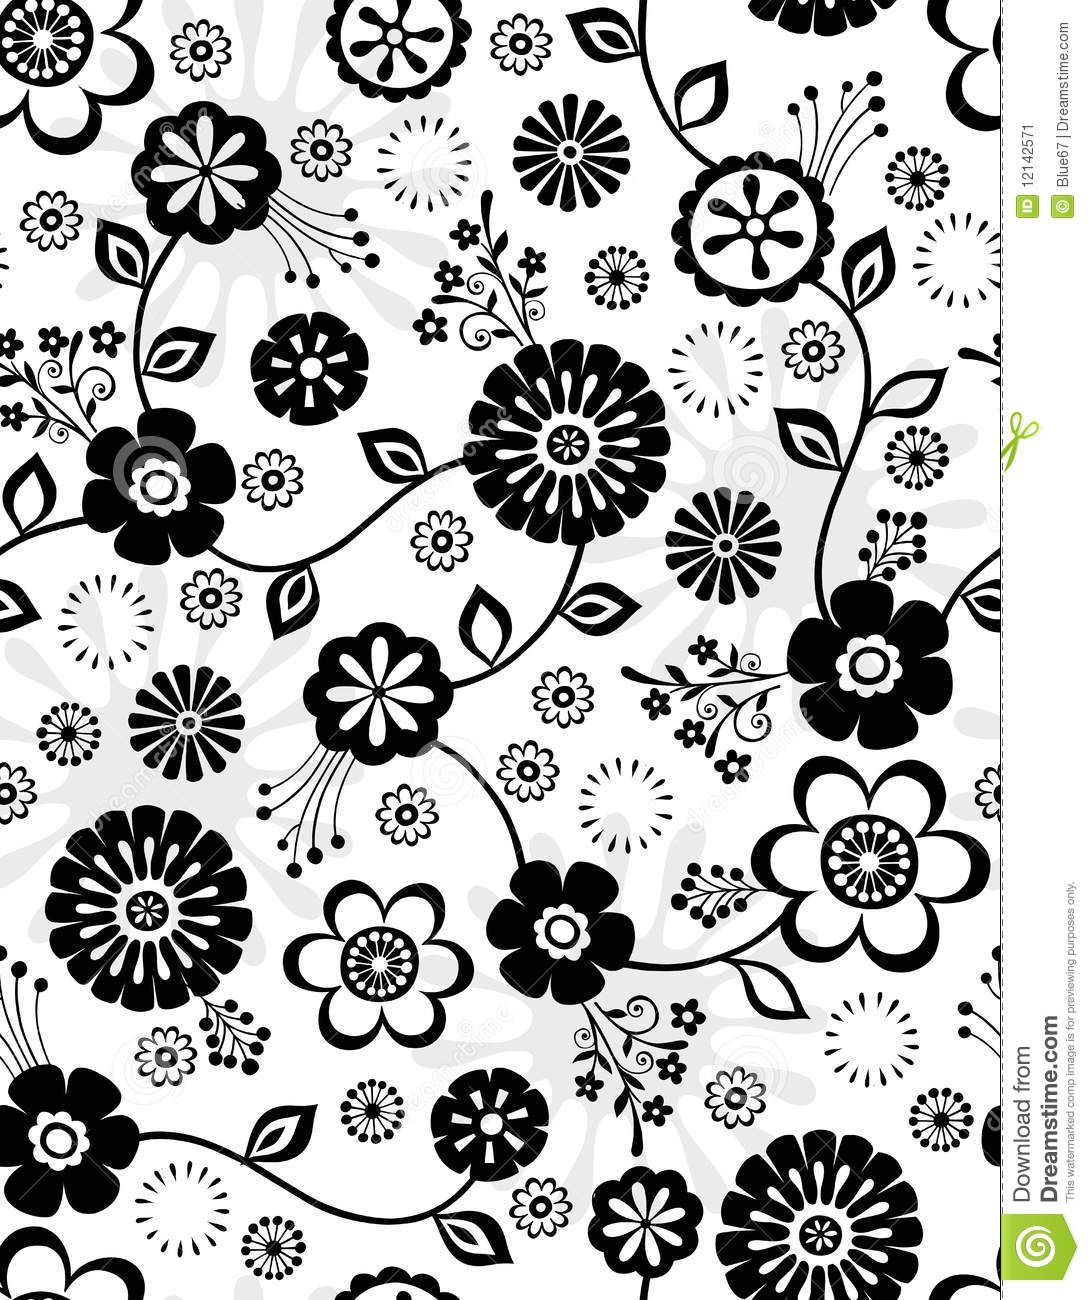 Black and white flowers seamless repeat pattern stock image black and white flowers seamless repeat pattern stock image mightylinksfo